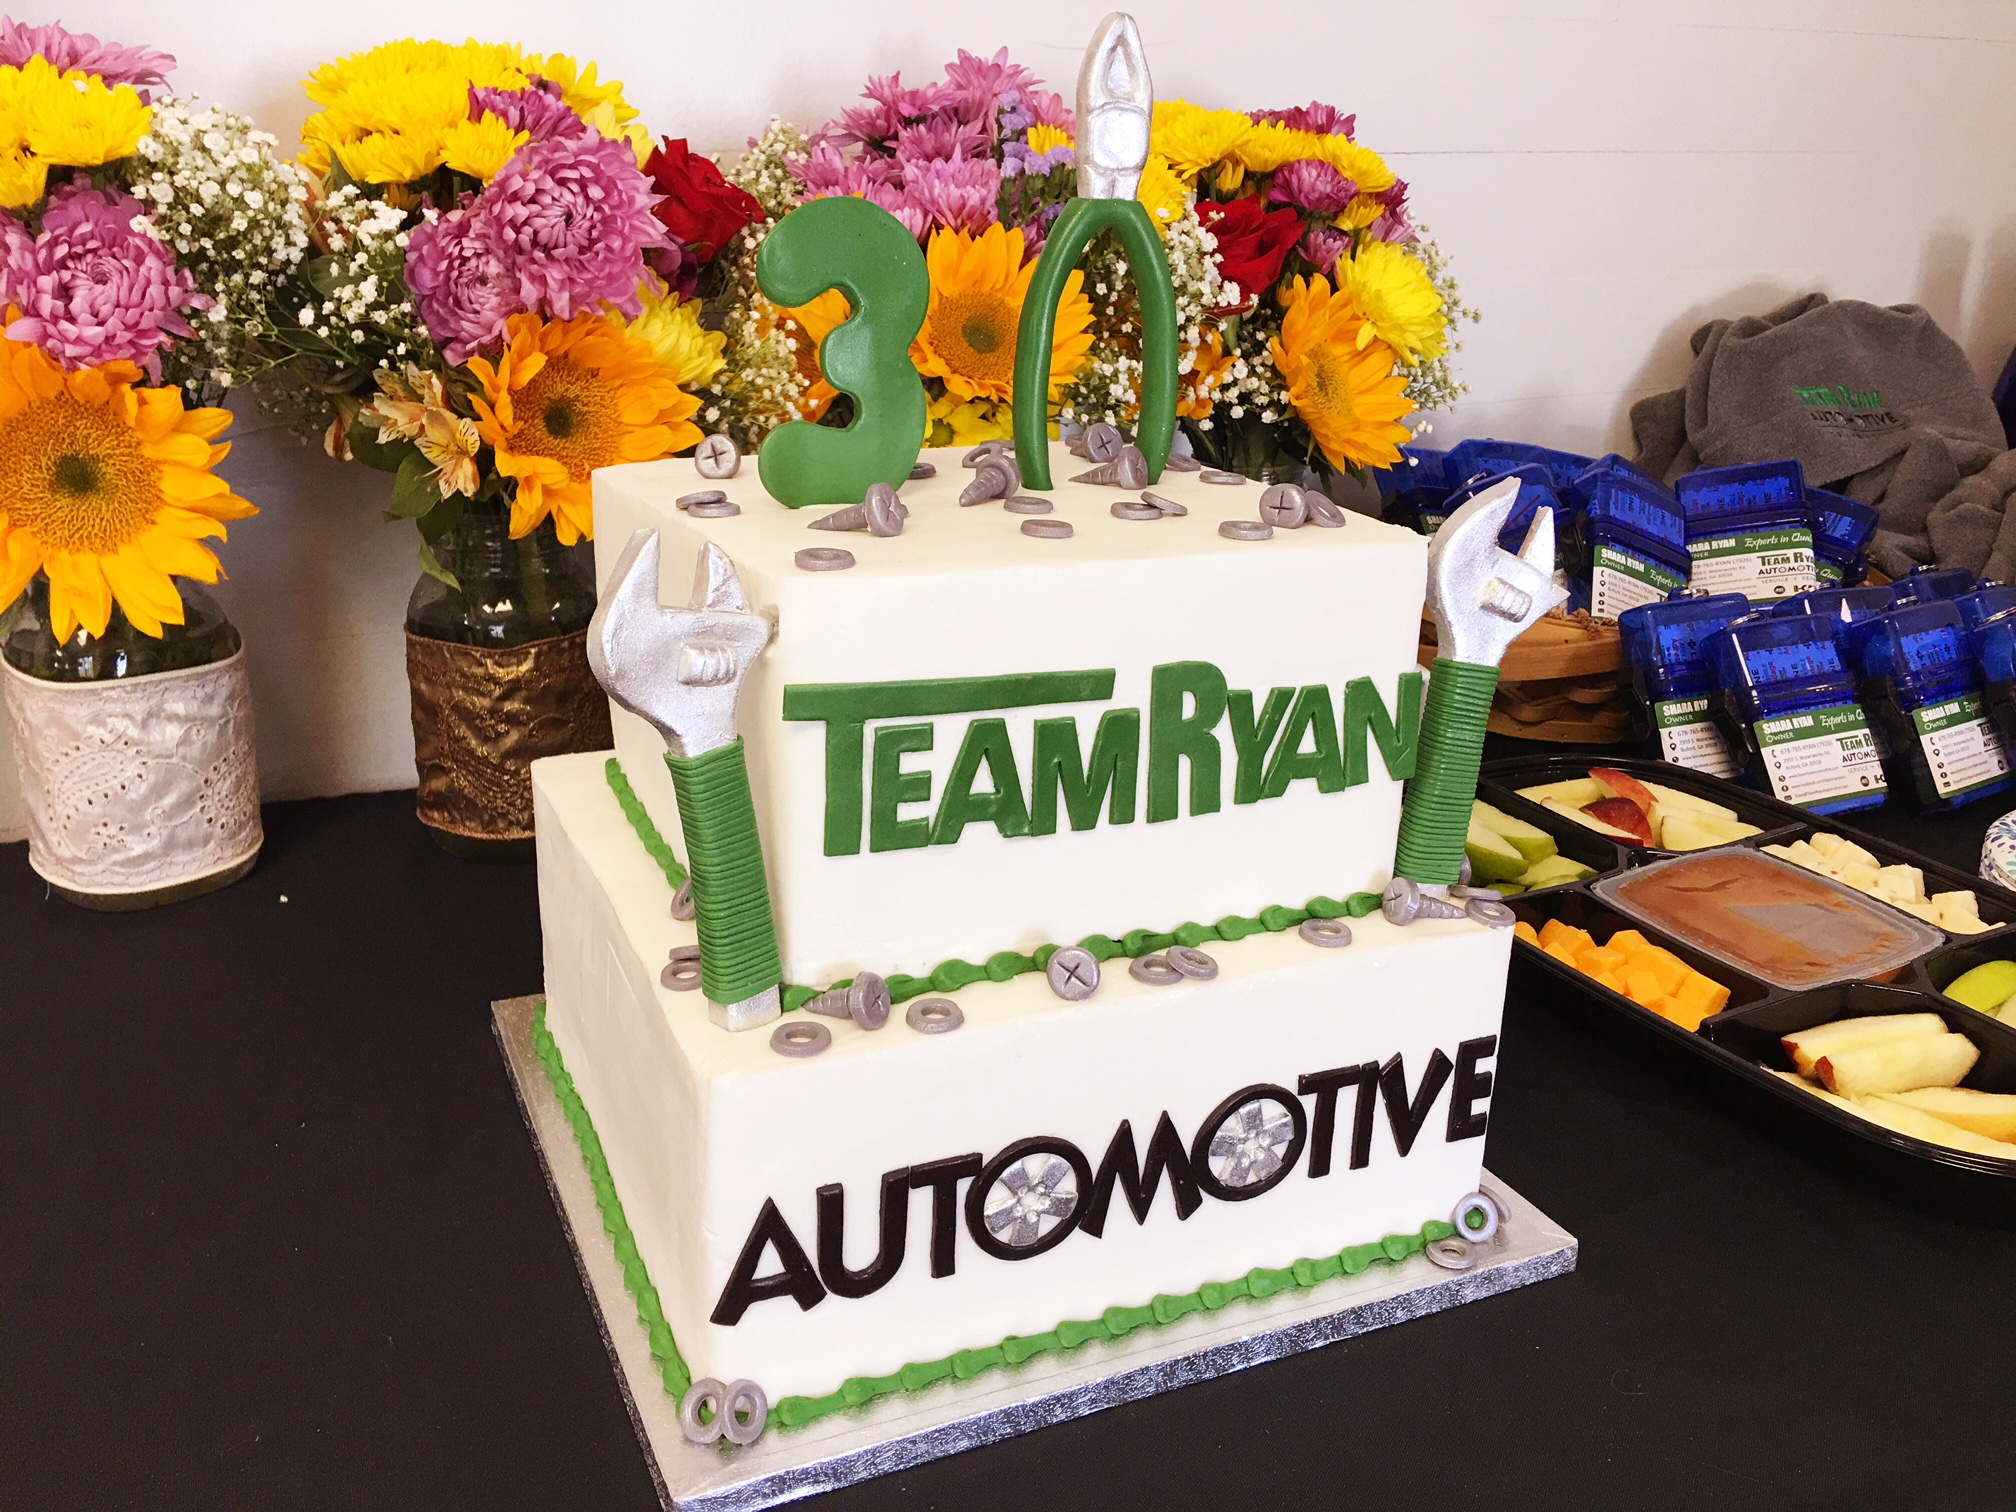 Team Ryan Automotive.jpg